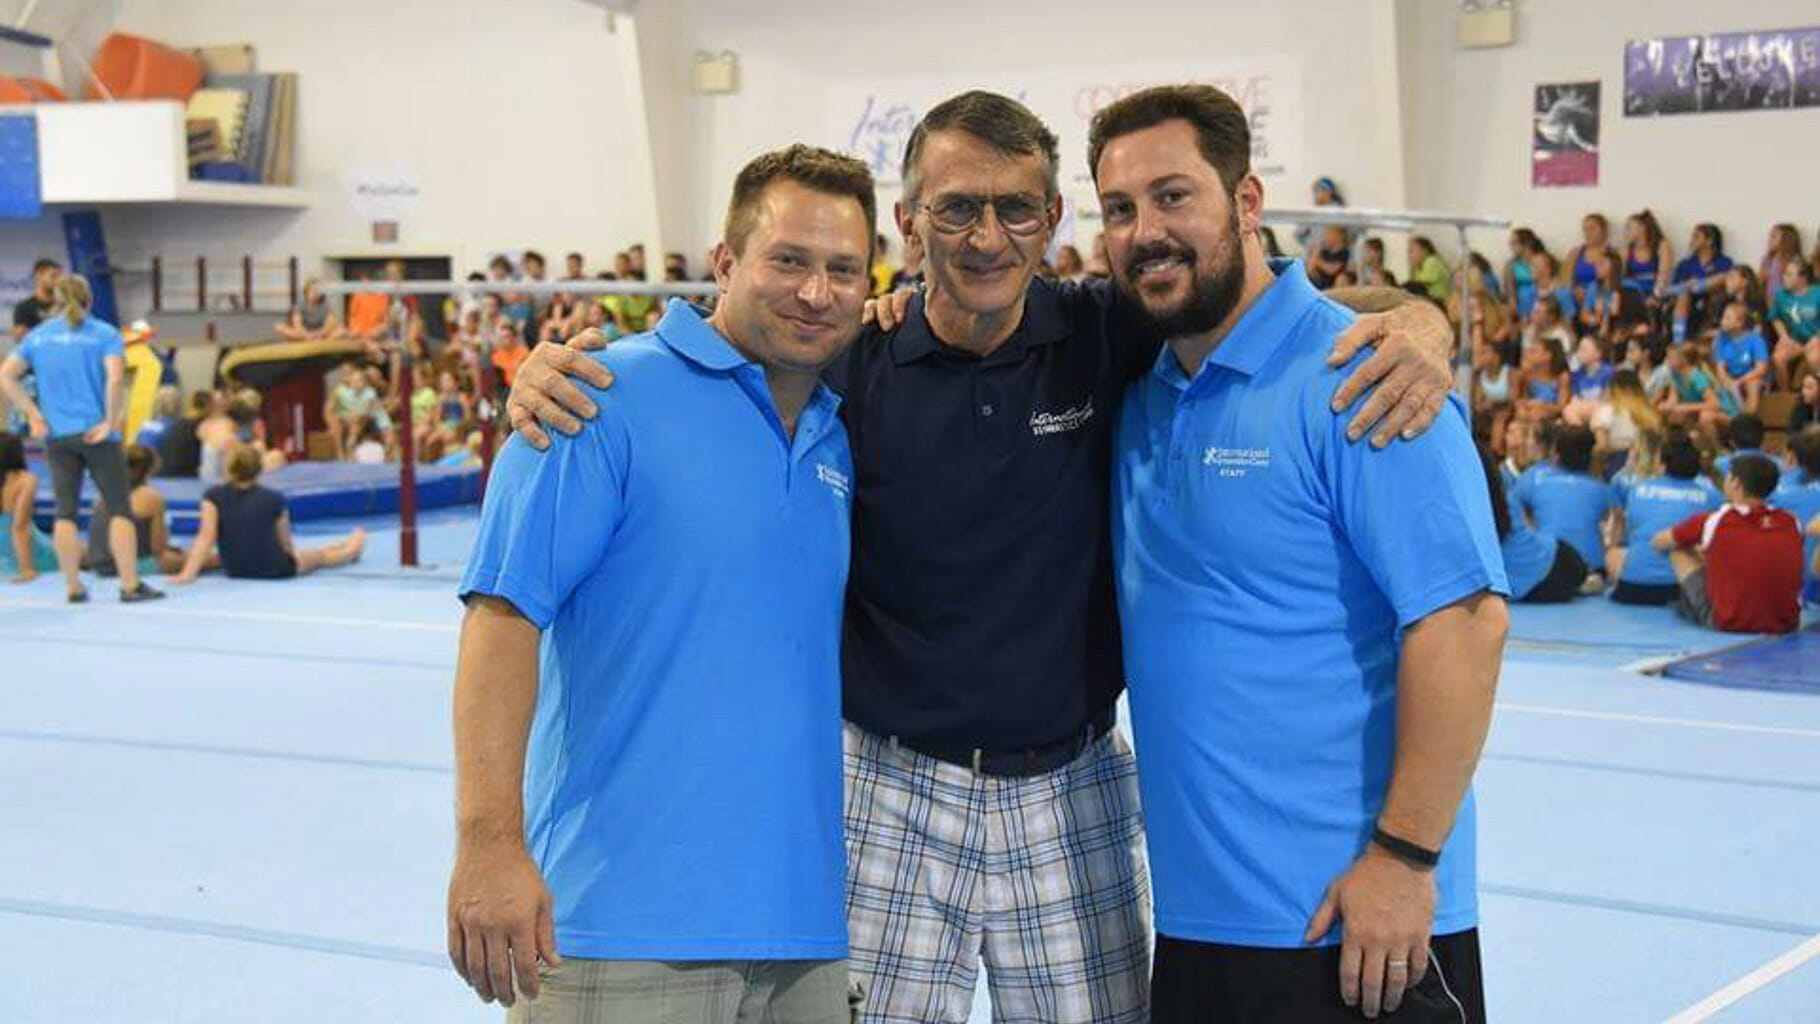 Brent, Coach Constantin, and another camp director